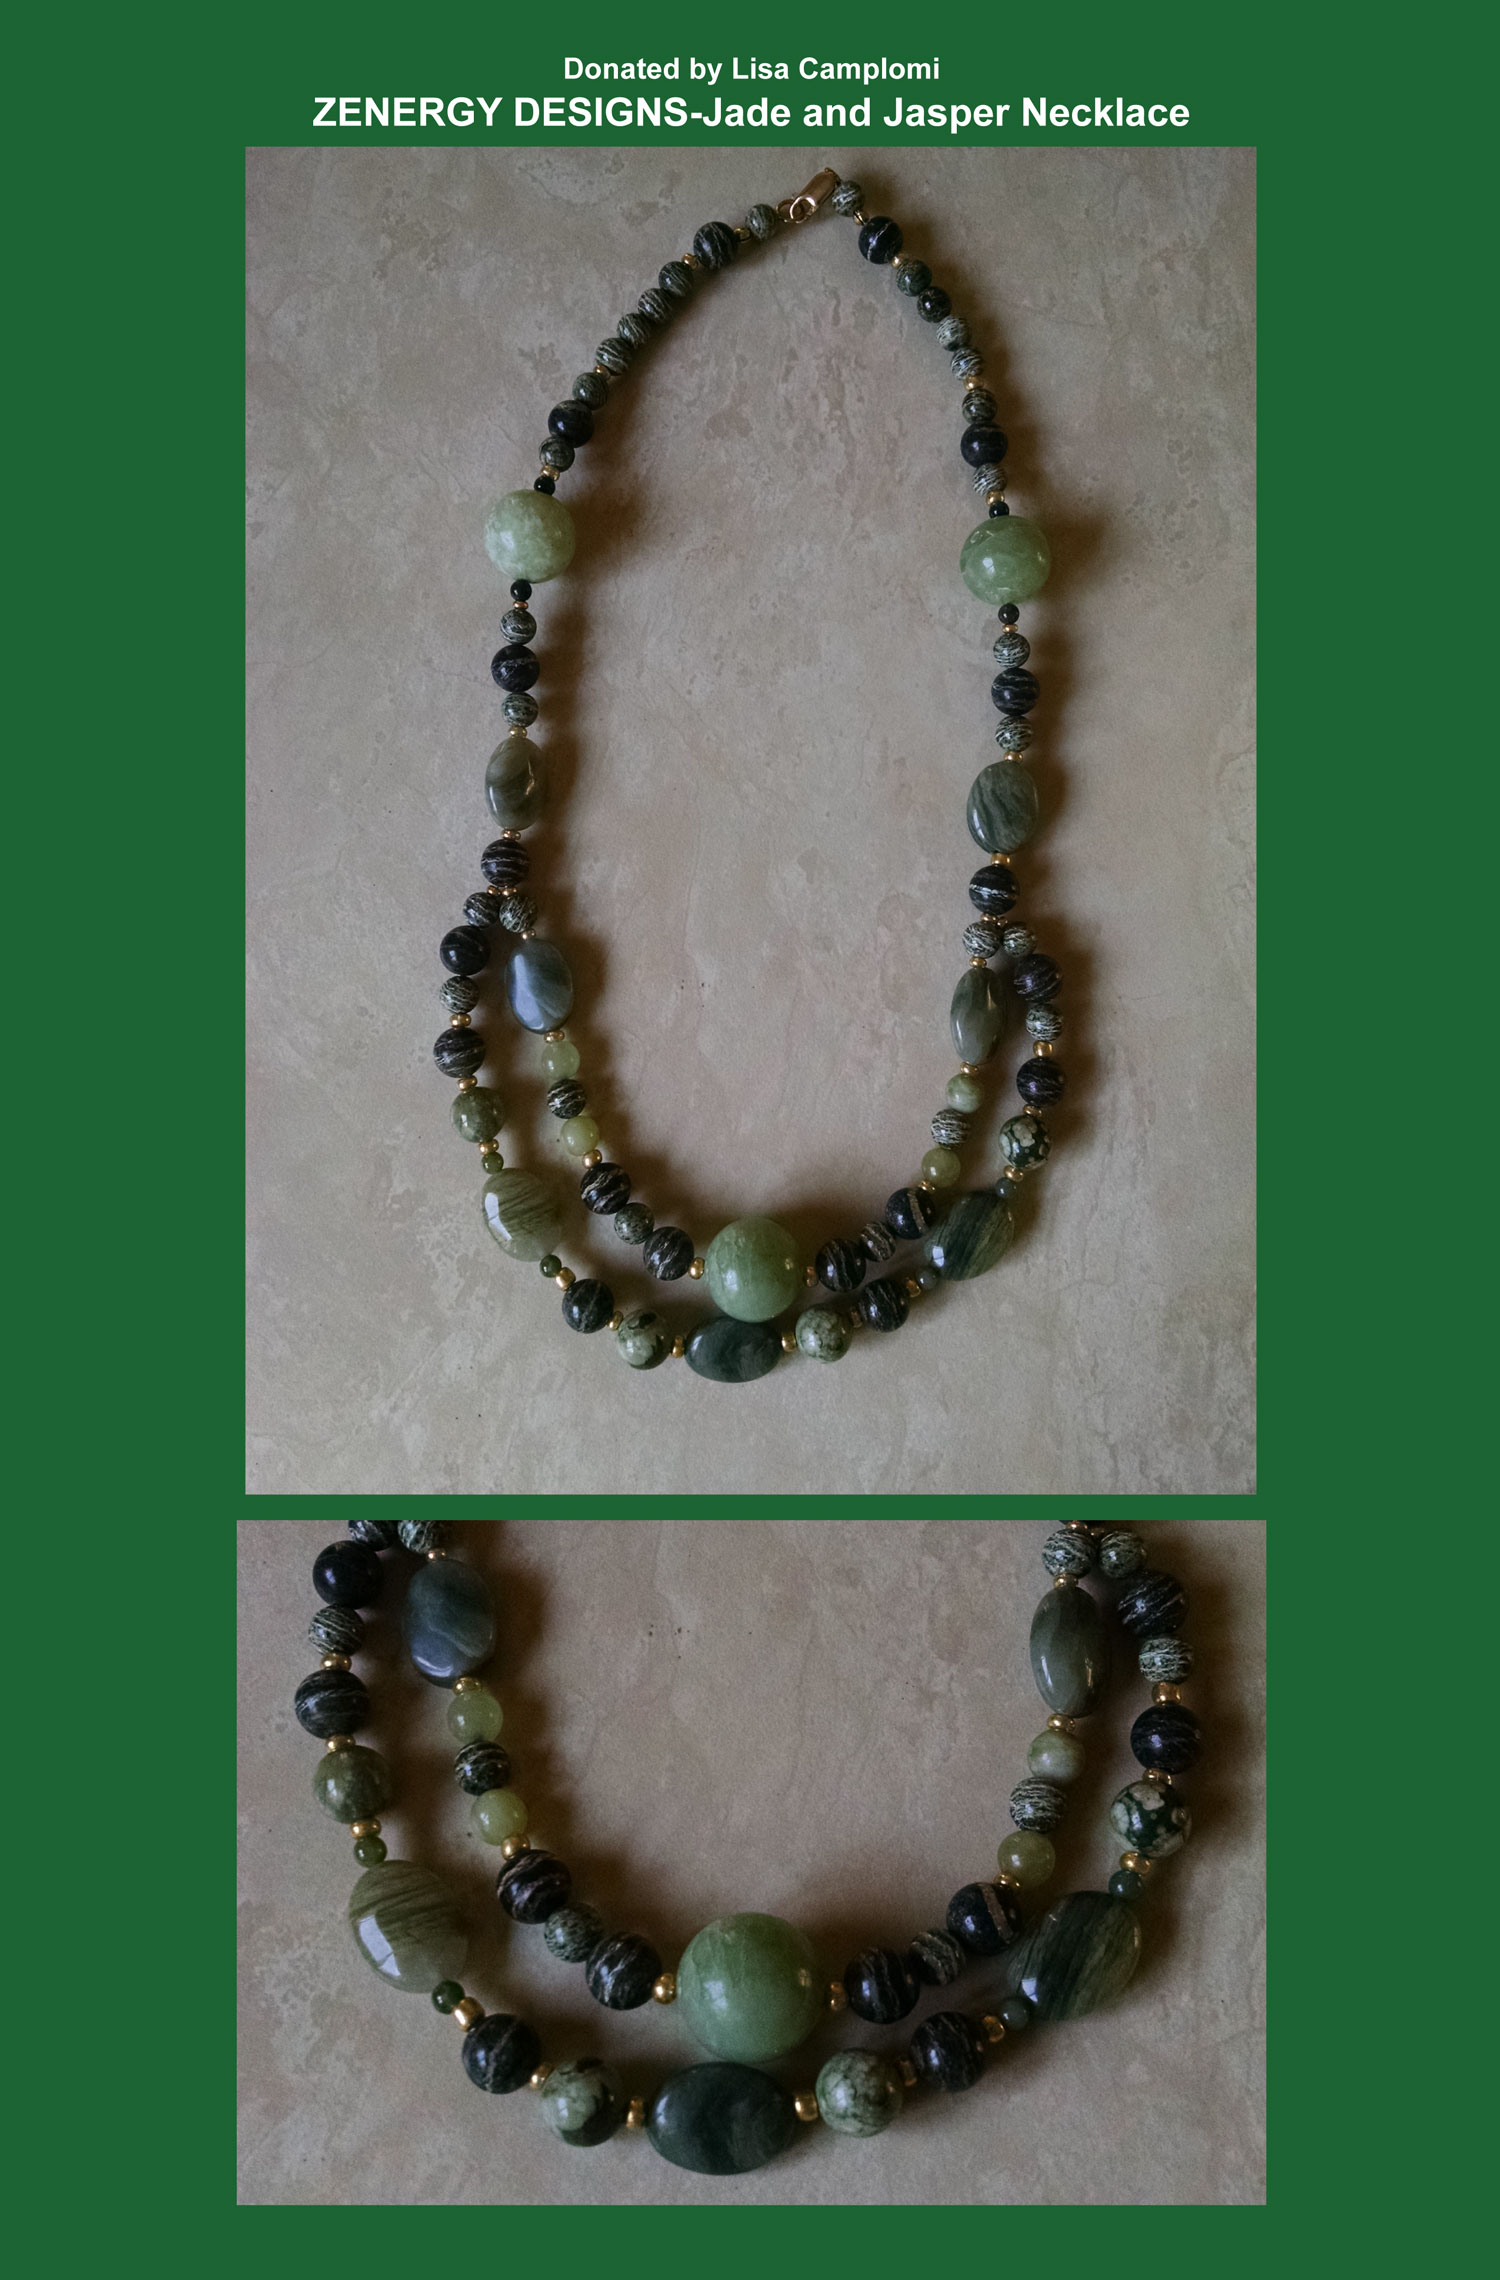 Jade and Jasper Necklace